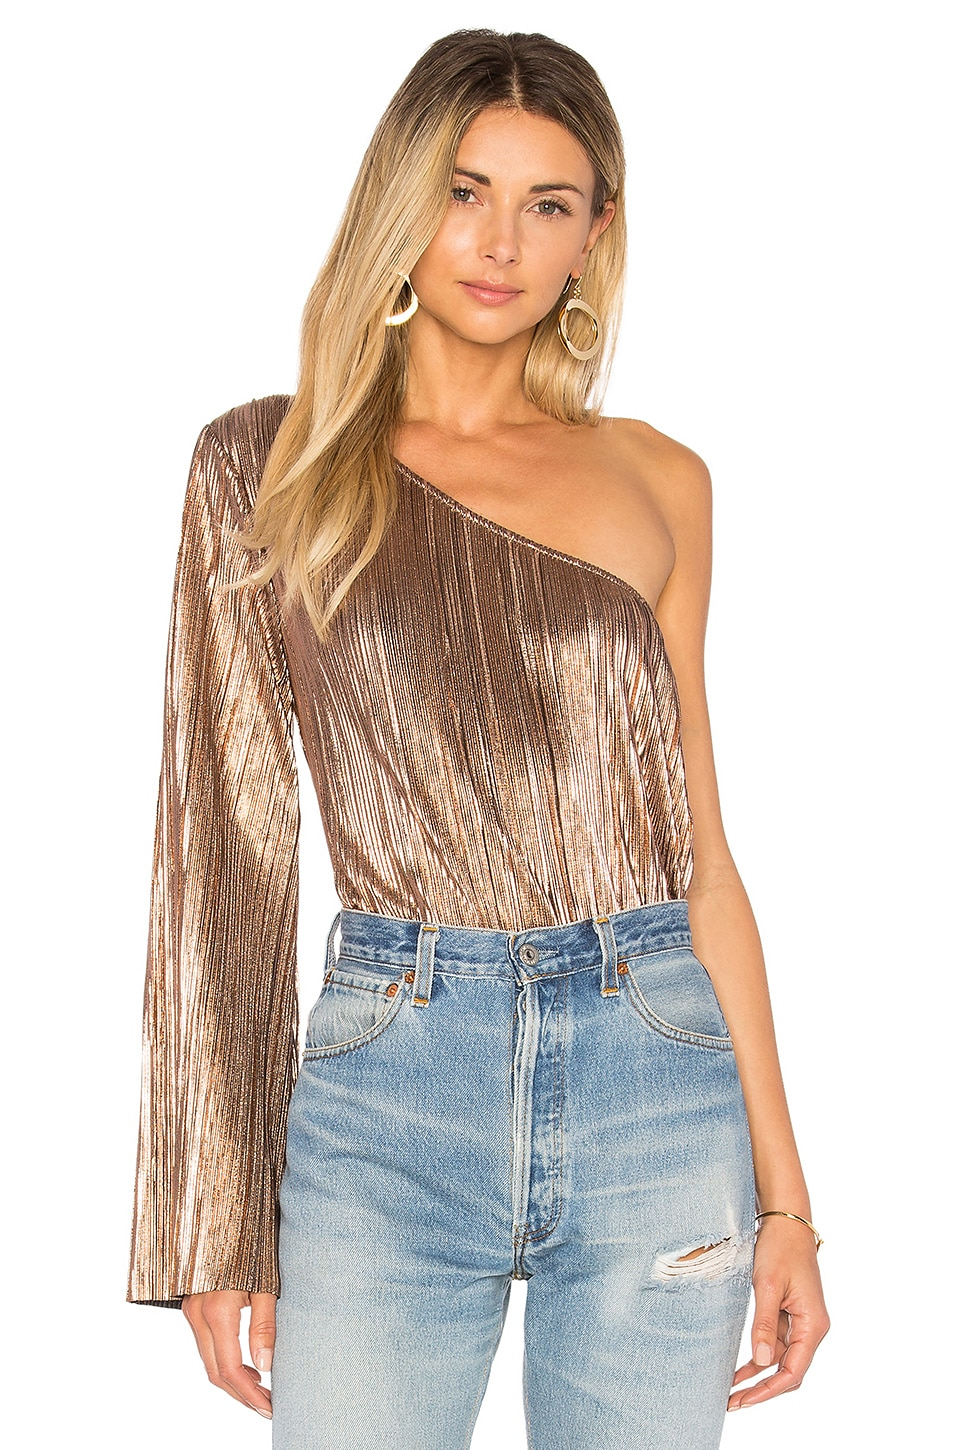 House of Harlow 1960 x REVOLVE Ross Top in Rose Gold